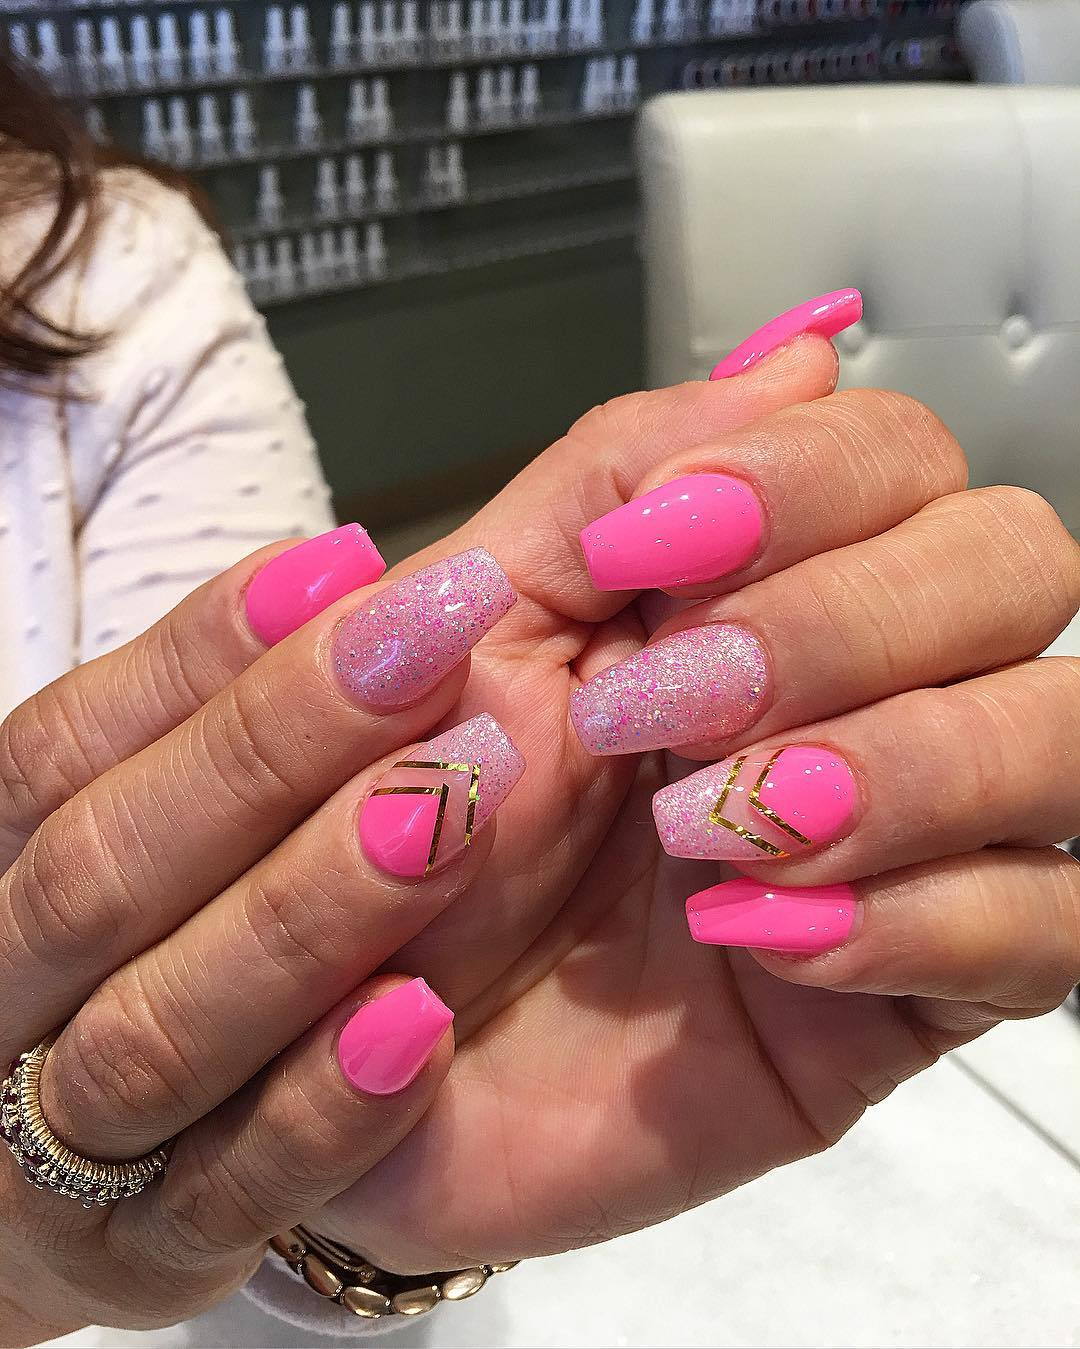 Pink Acrylic Nail Designs: Best Summer Acrylic Nail Art Design Ideas For 2016